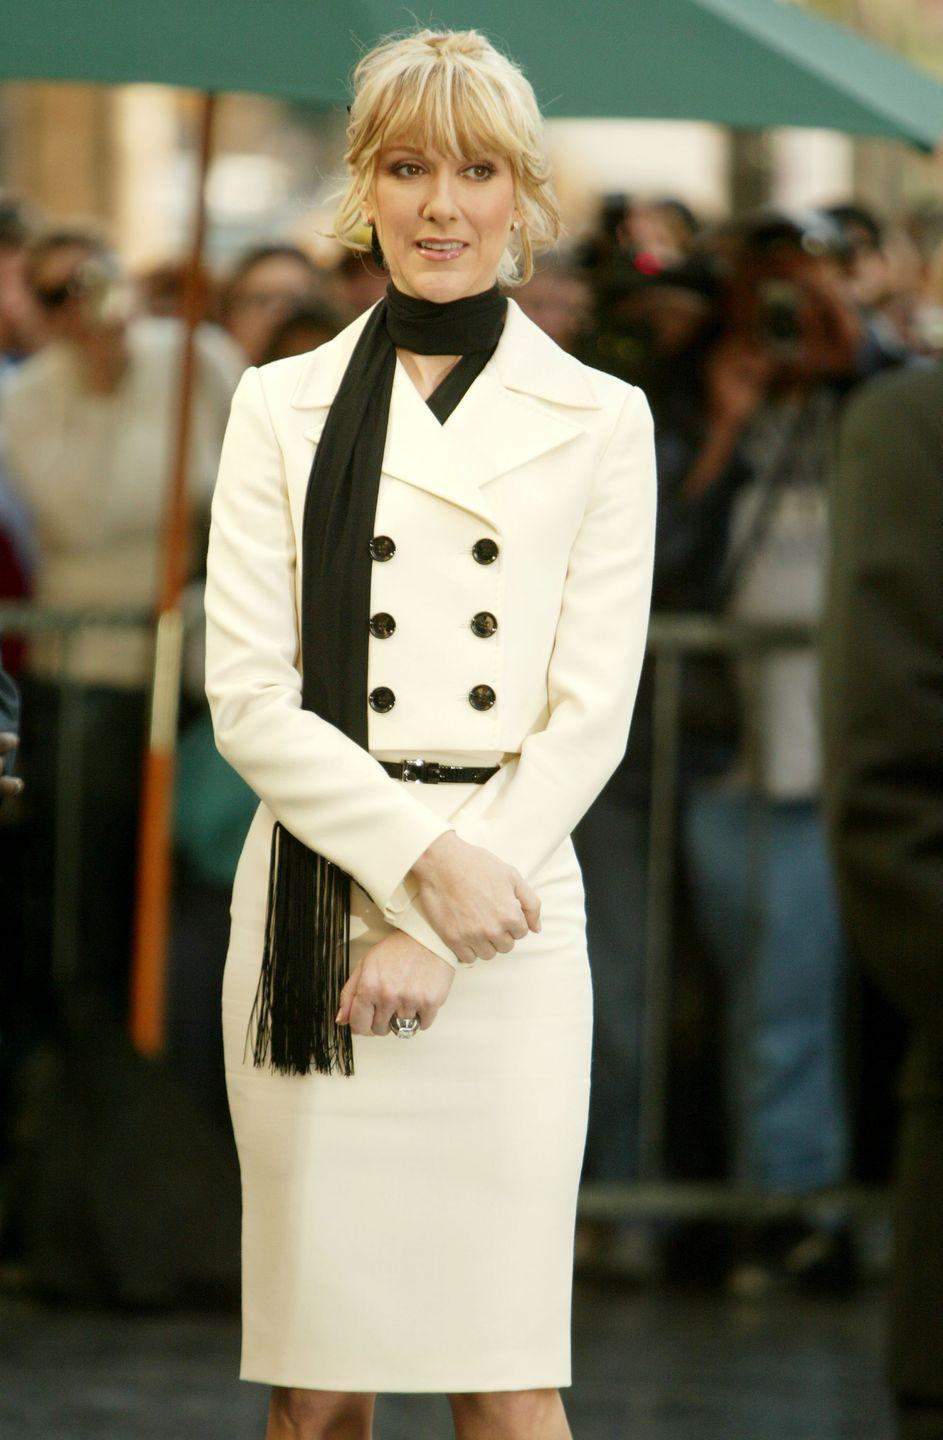 <p>On the day she received her star on the Hollywood Walk of Fame, Celine wore a structured ivory and black suit. Her hair framed her face in a low pony, which gave the look a more playful feel. </p>